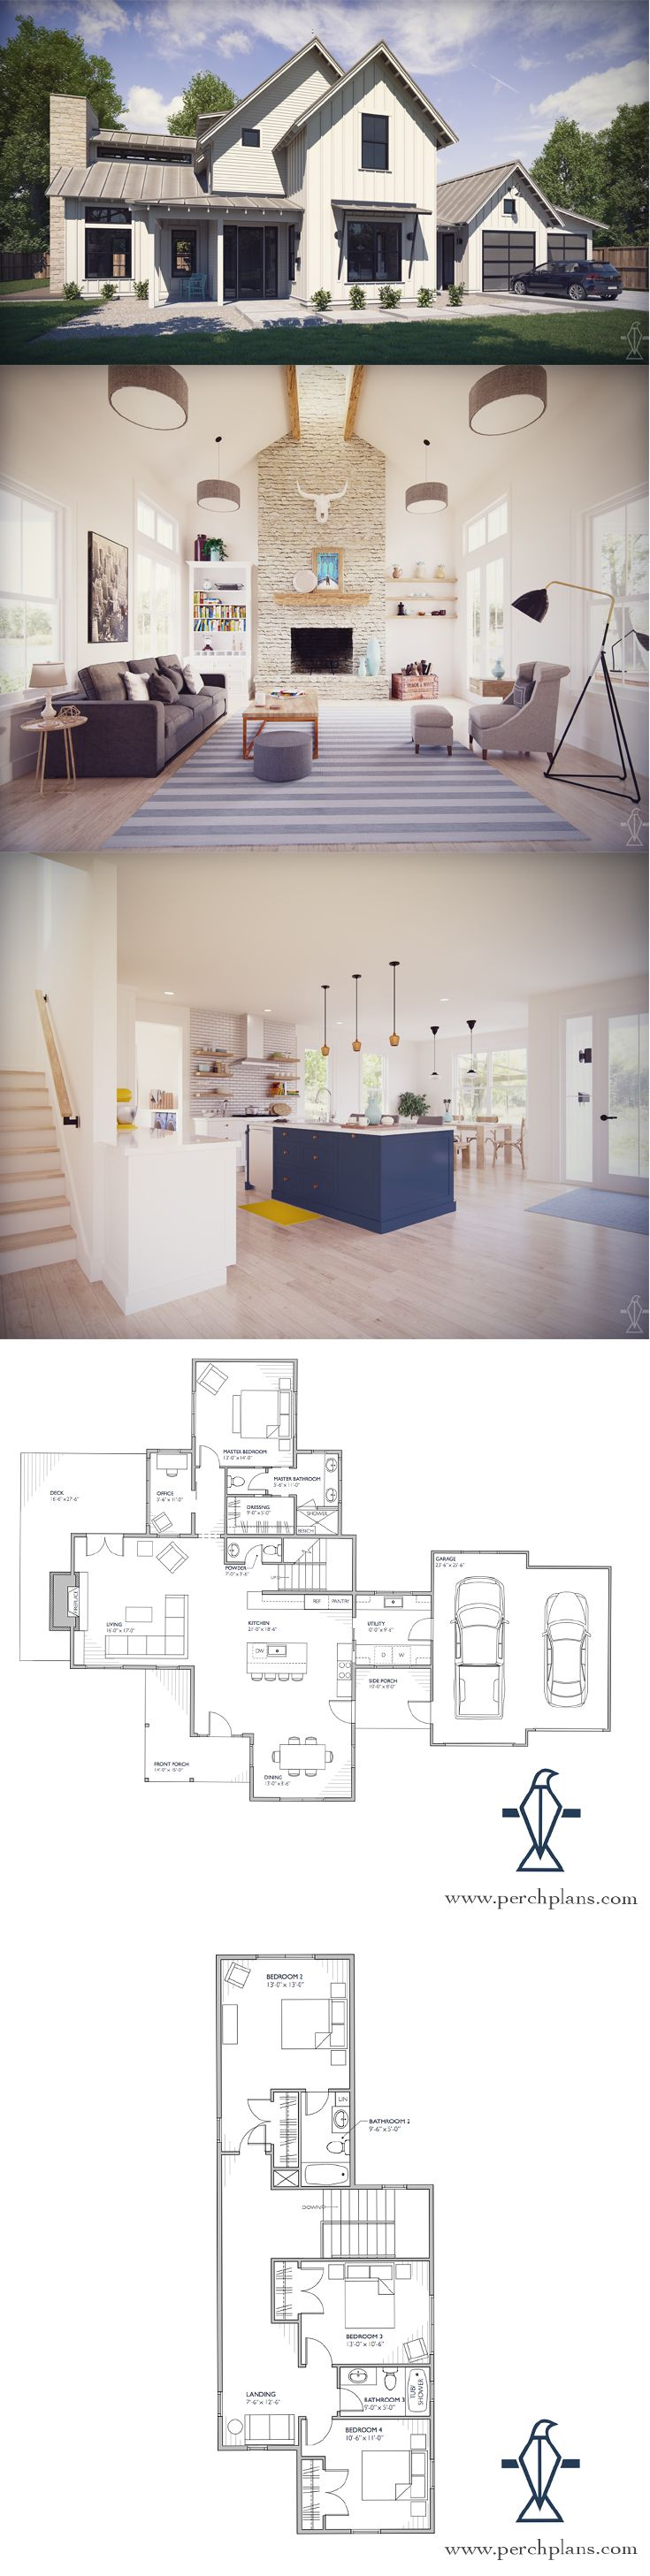 our normande modern farmhouse floor plan is perfect for families with its open concept living space